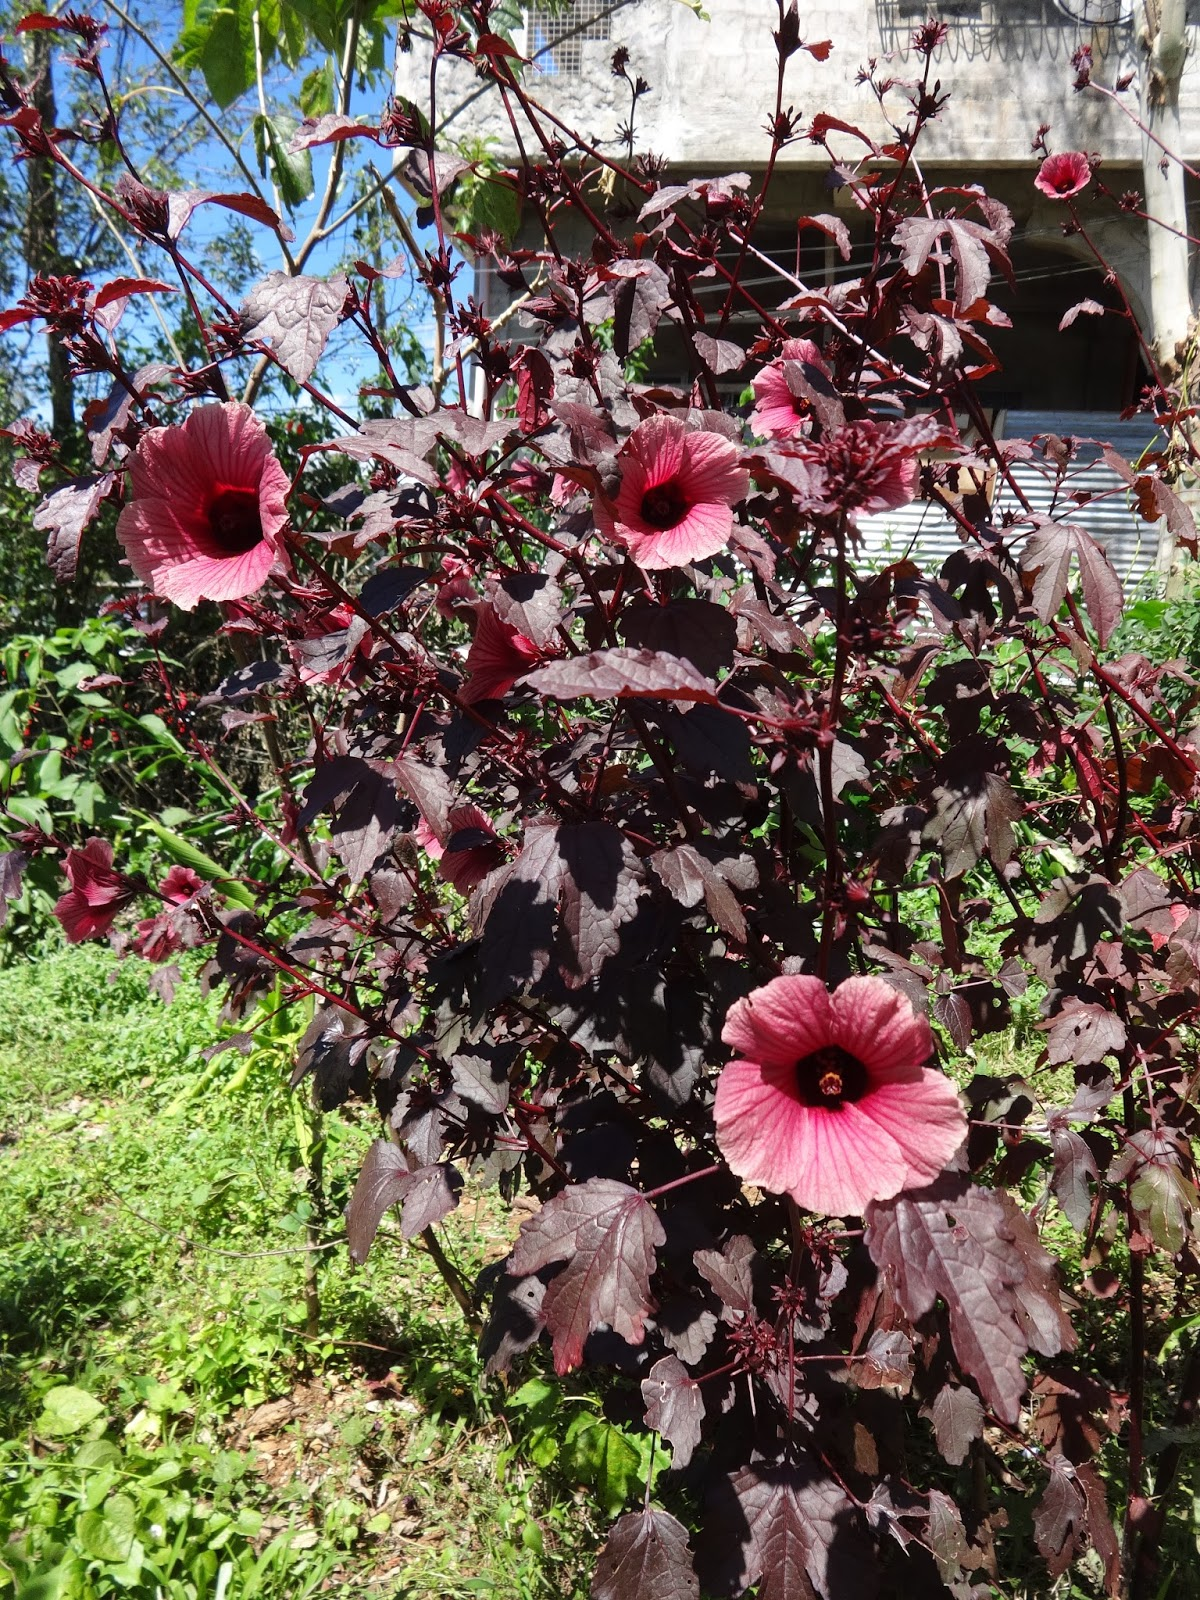 Herbs from distant lands hibiscus acetosella cranberry hibiscus you are what you eat they say i never seen such a red caterpillar so i guess its color is caused by its hibiscus diet izmirmasajfo